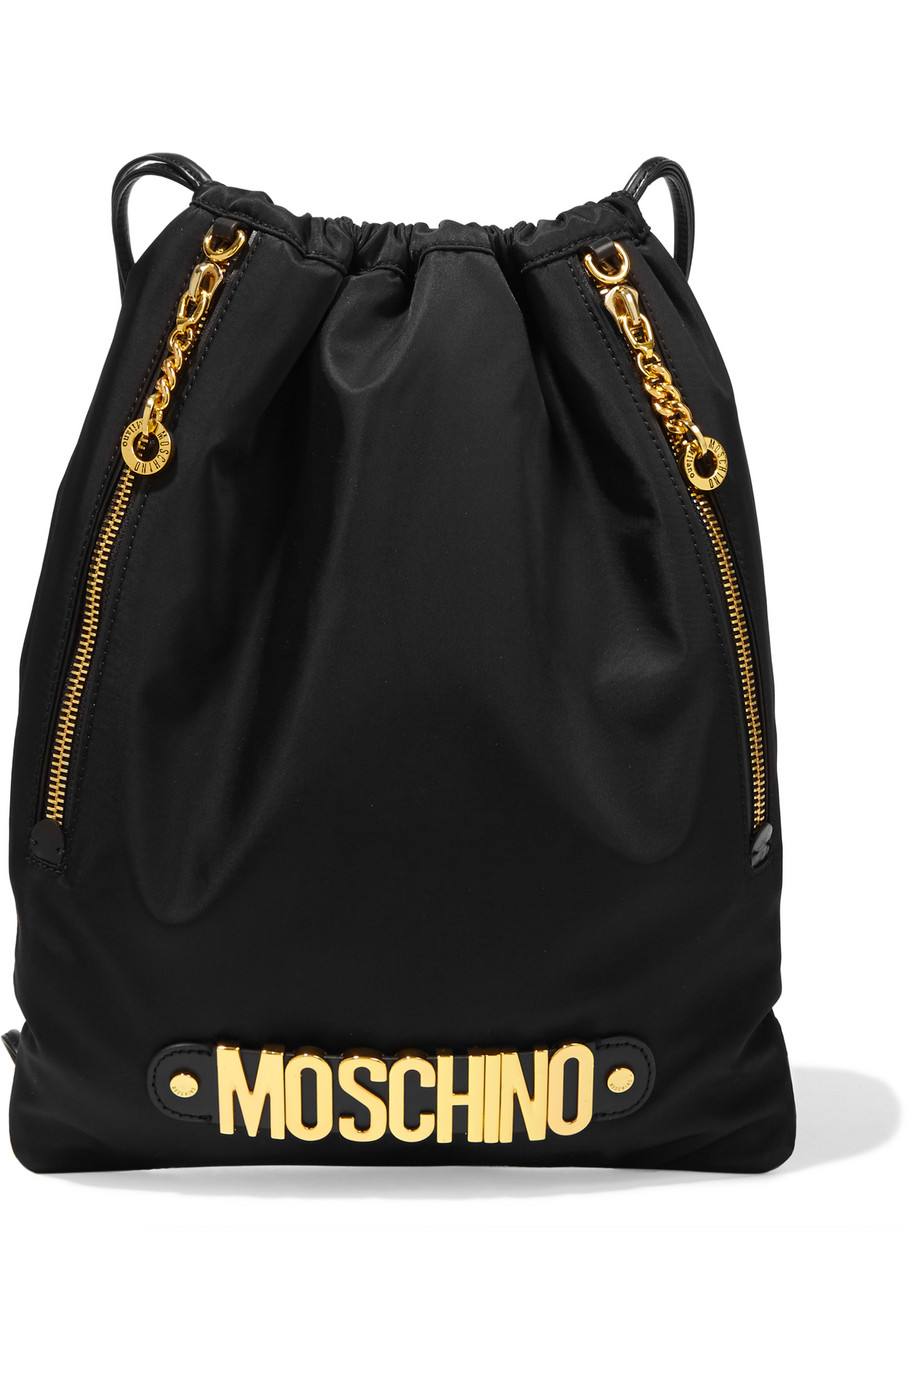 Moschino Embellished Leather-Trimmed Shell Backpack